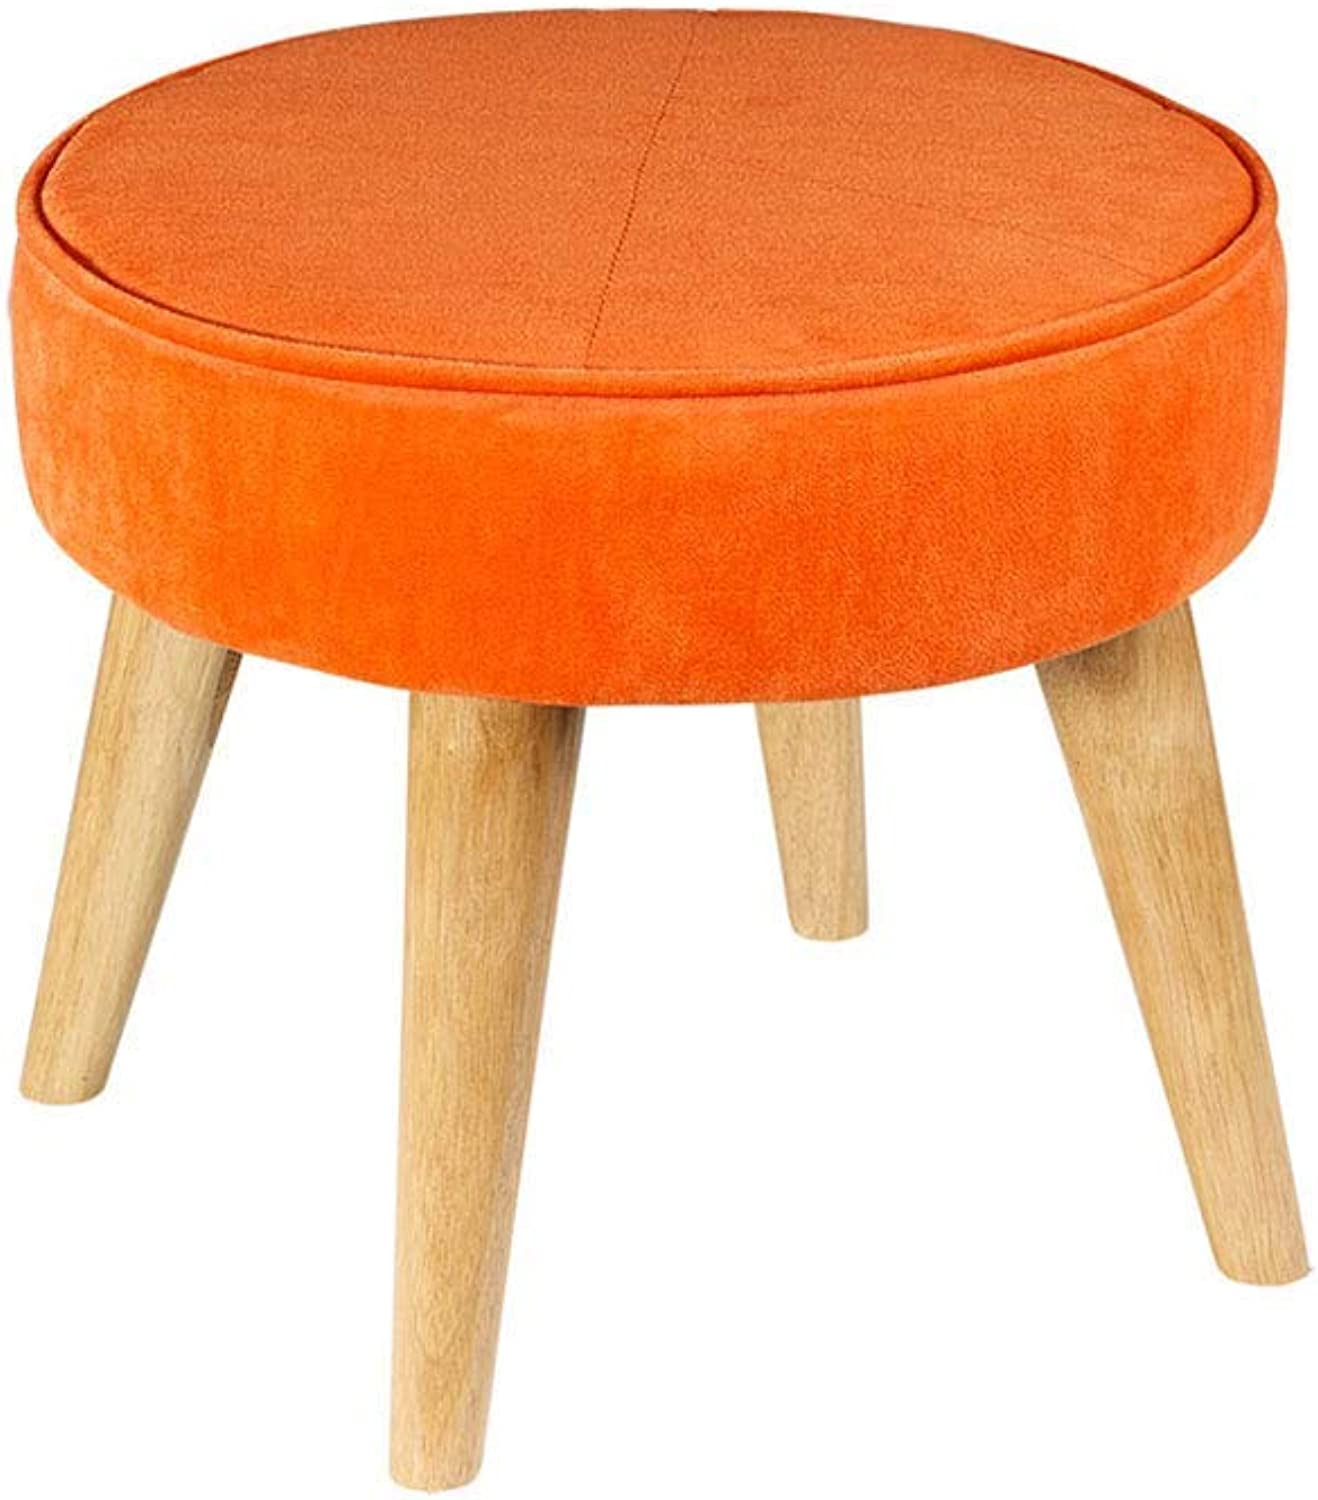 GJD Household Footstool, Simple Modern Fabric Sofa Bench Household Solid Wood Stool40×36cm, Multi-color Selection (color   orange)